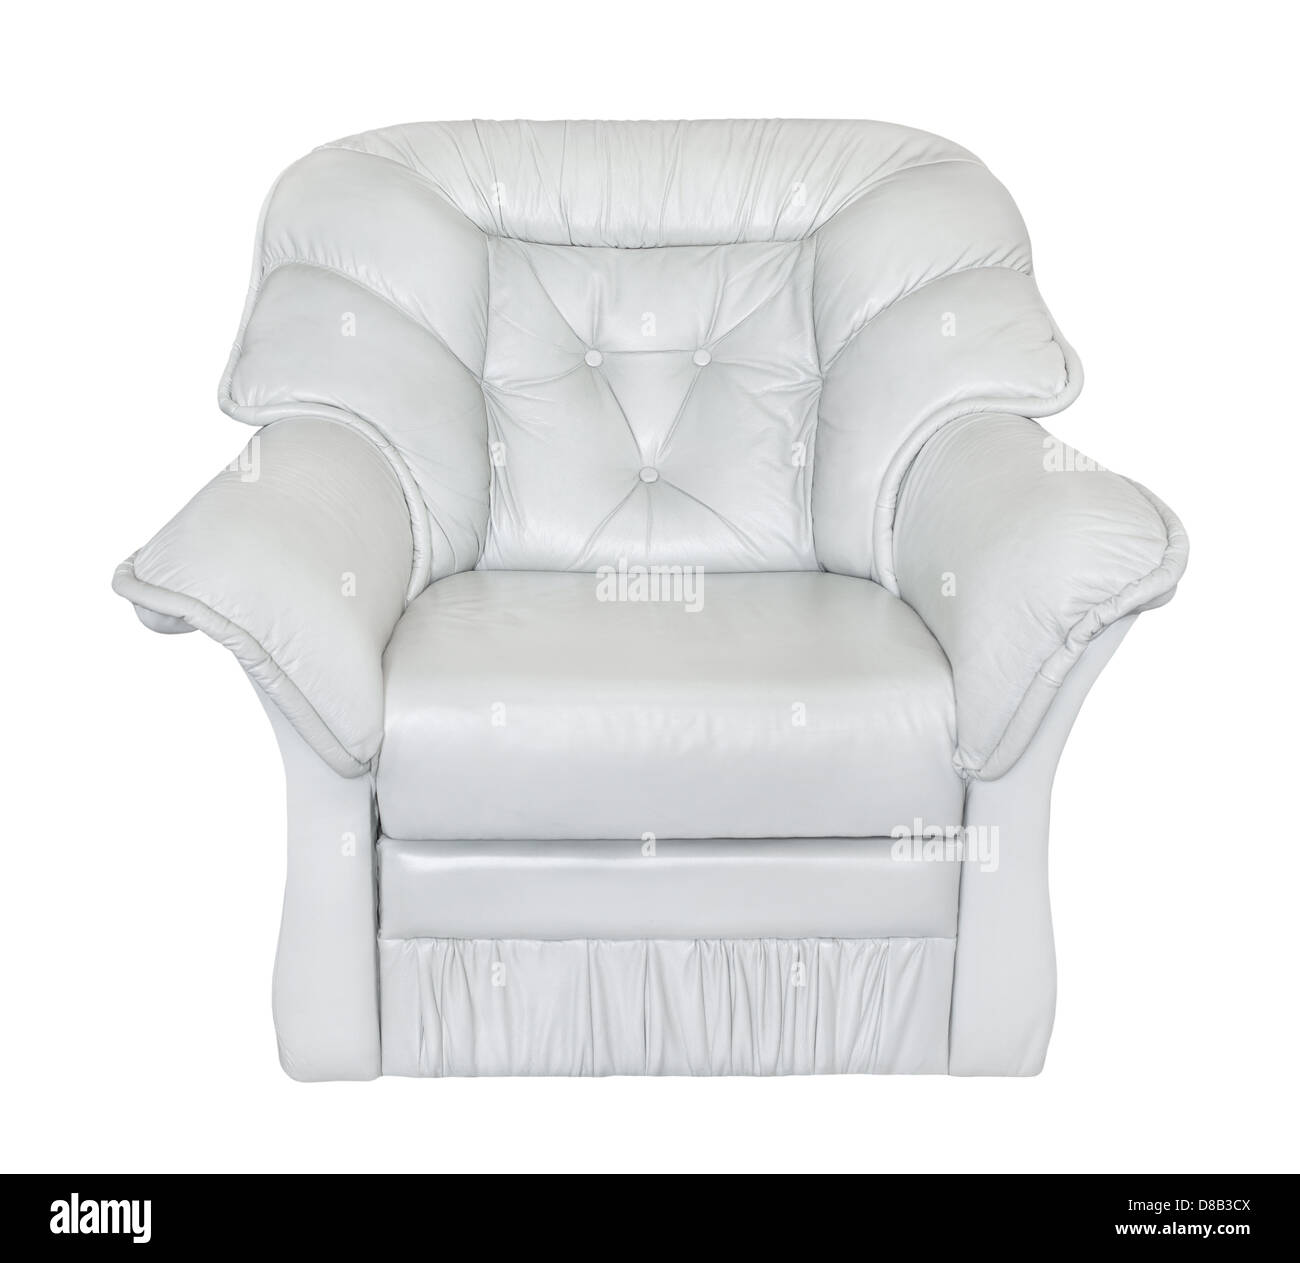 armchair leather white on white background - Stock Image